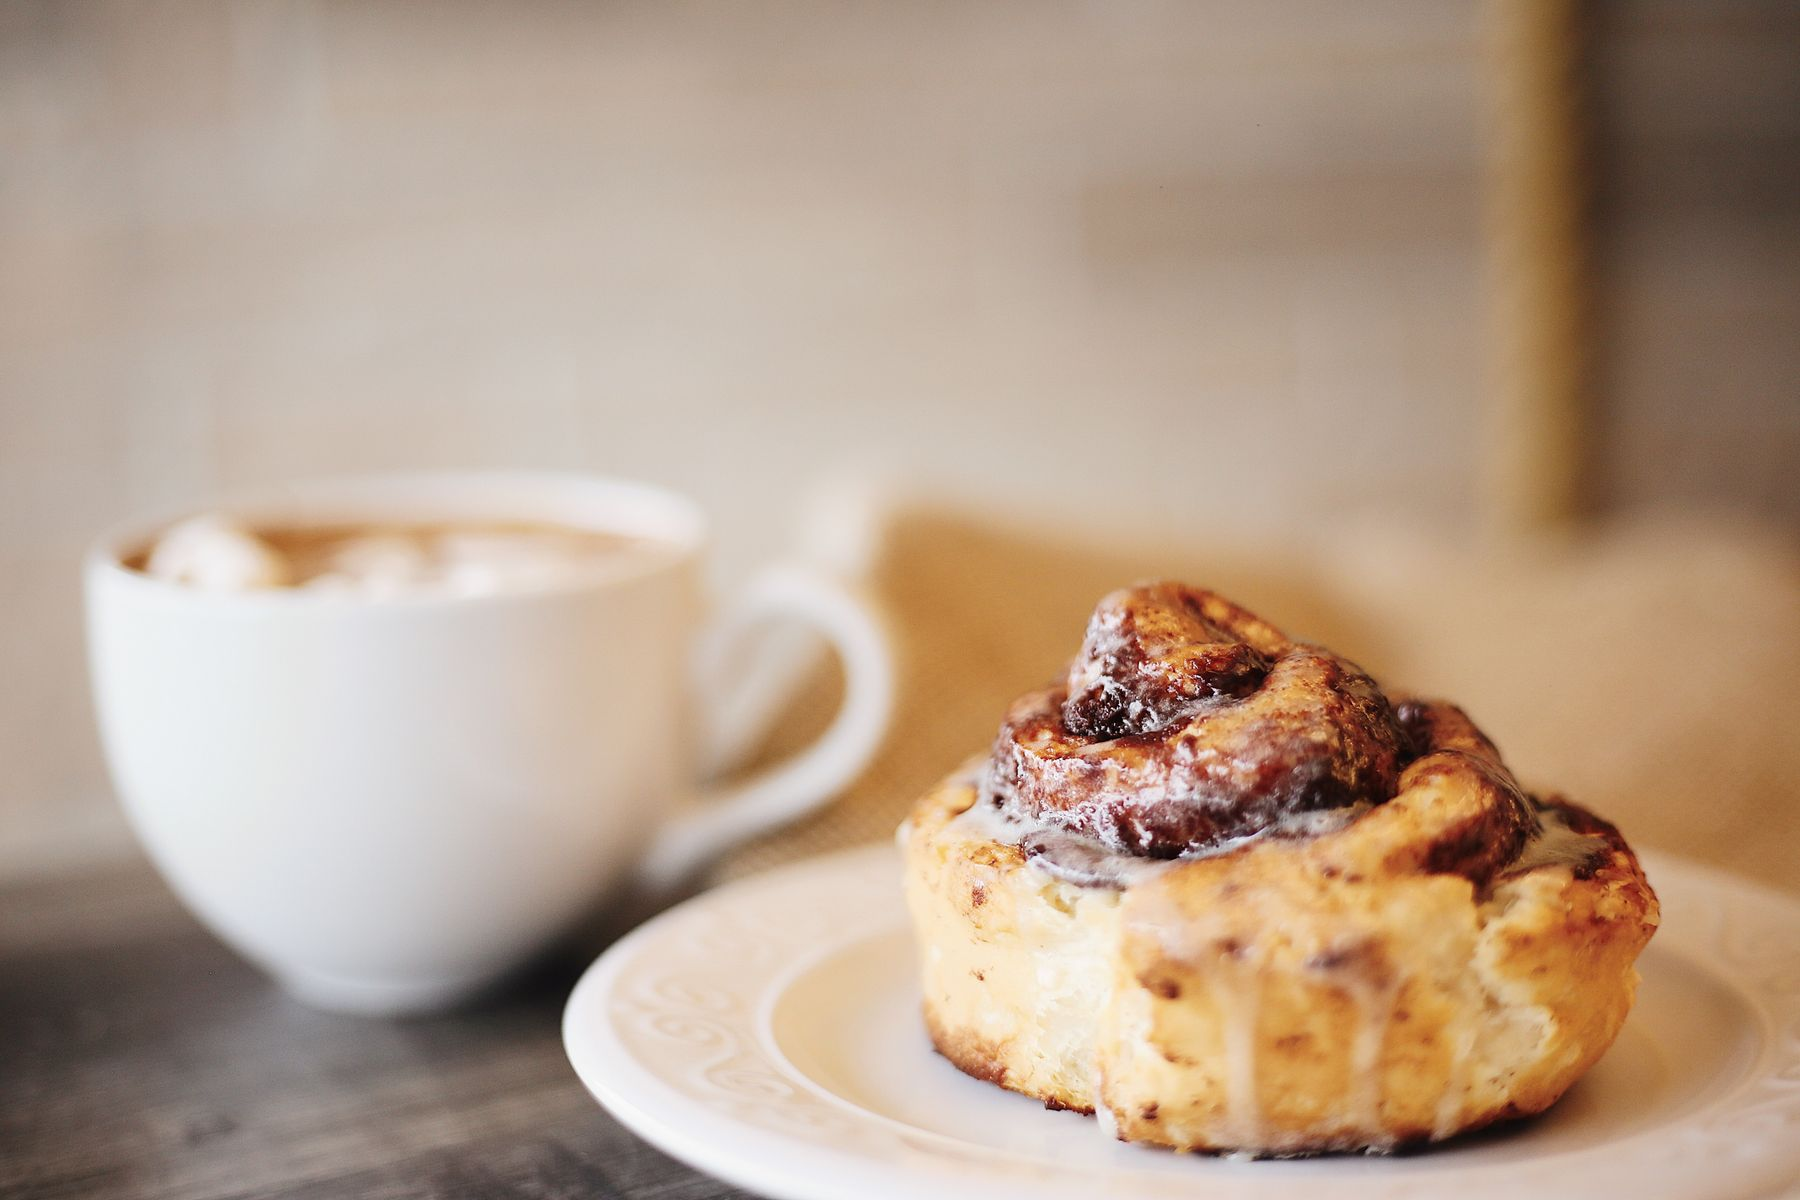 cinnamon roll on a plate with a latte in the background